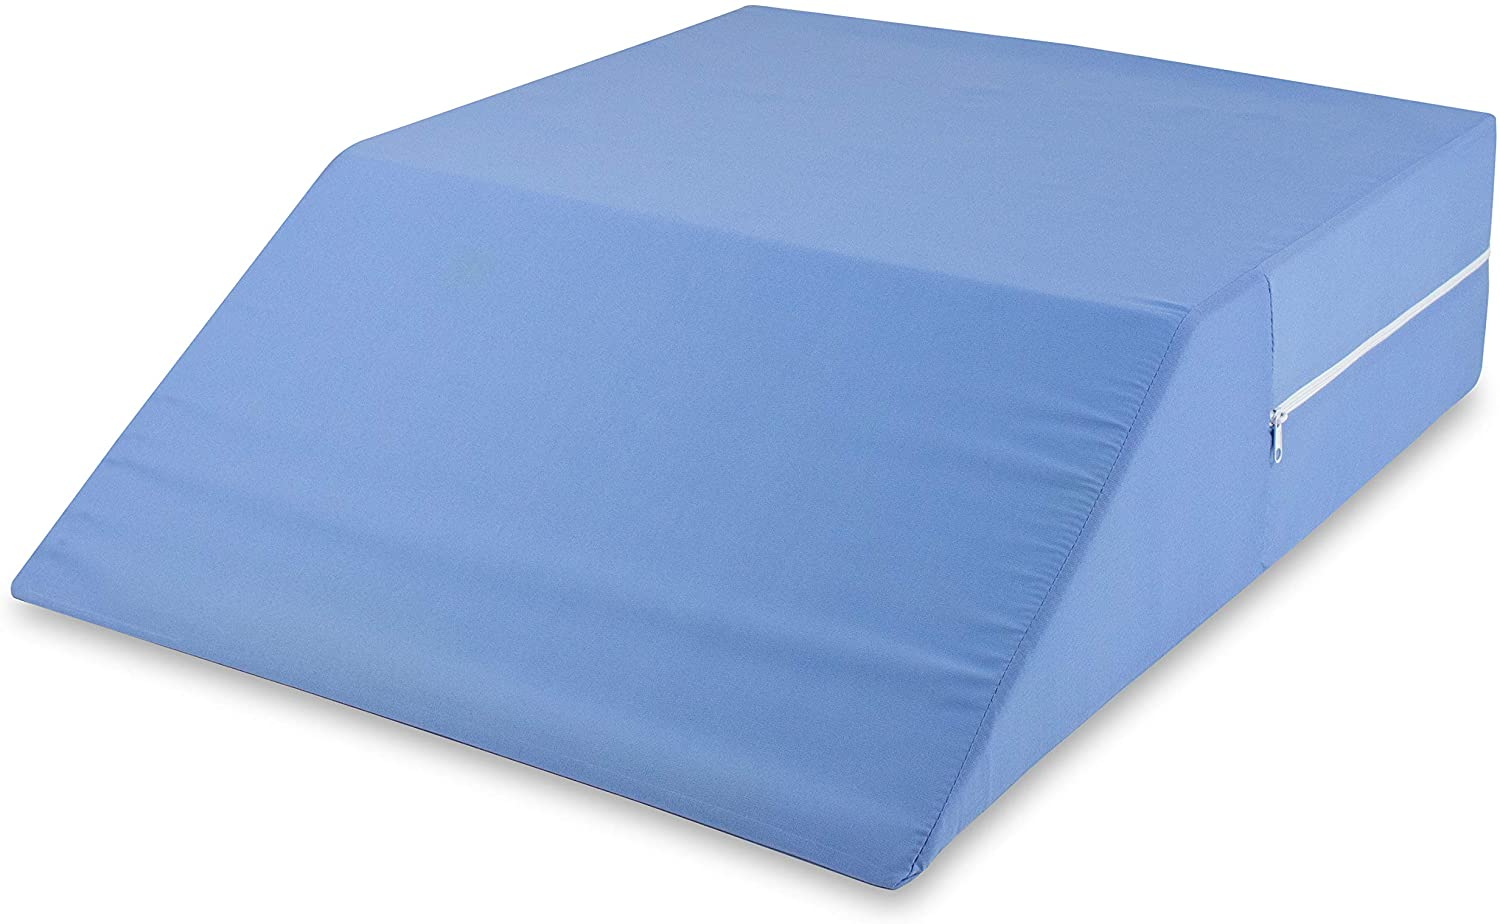 """DMI Ortho Bed Wedge Elevated Leg Pillow, Supportive Foam Wedge Pillow for Elevating Legs, Improved Circulation, Reducing Back Pain, Post Surgery and Injury, Recovery, Blue, 6"""" x 20"""" x 24"""""""